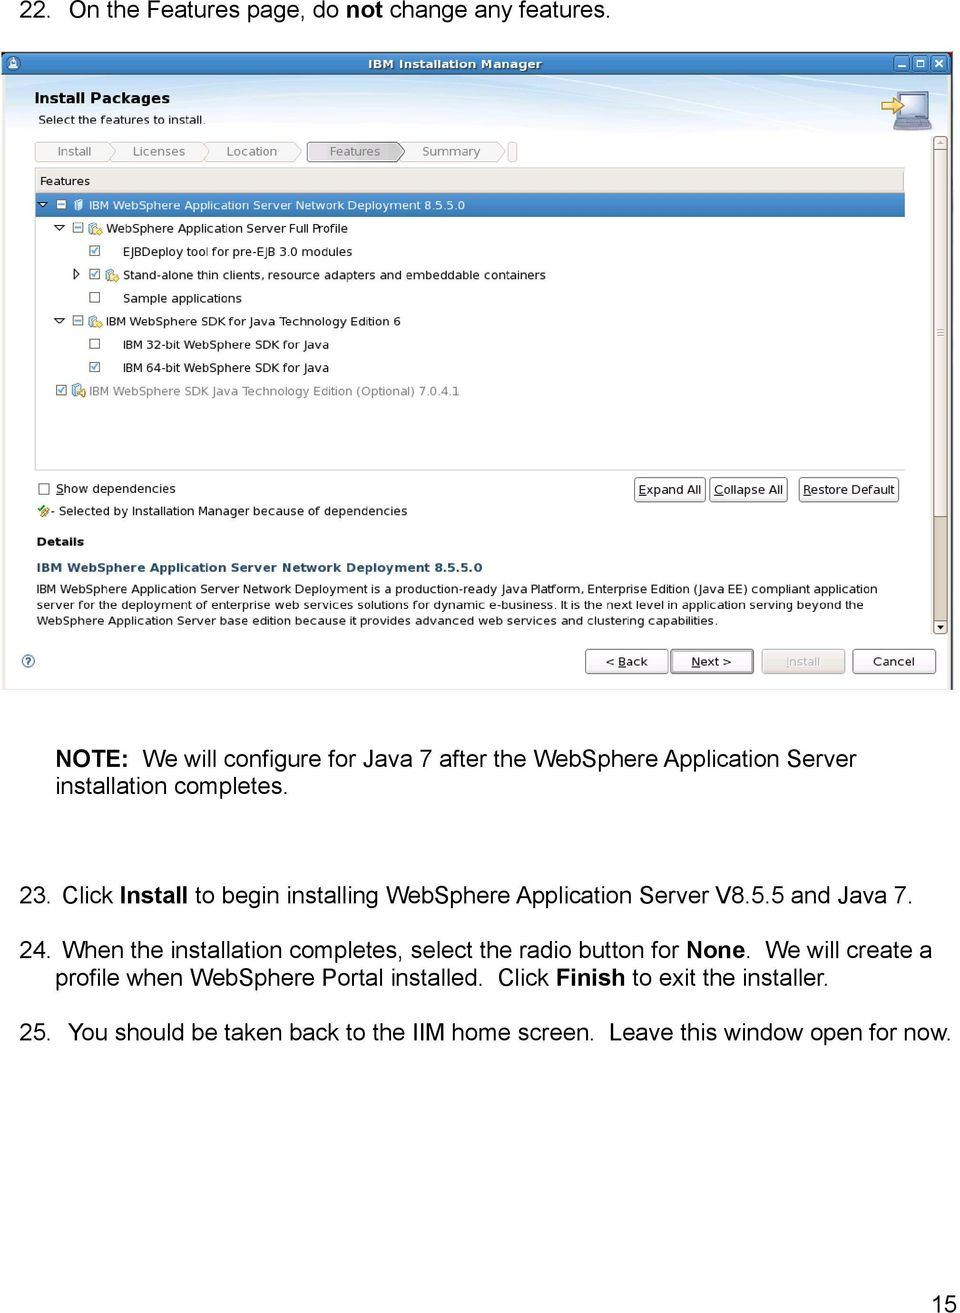 Click Install to begin installing WebSphere Application Server V8.5.5 and Java 7. 24.